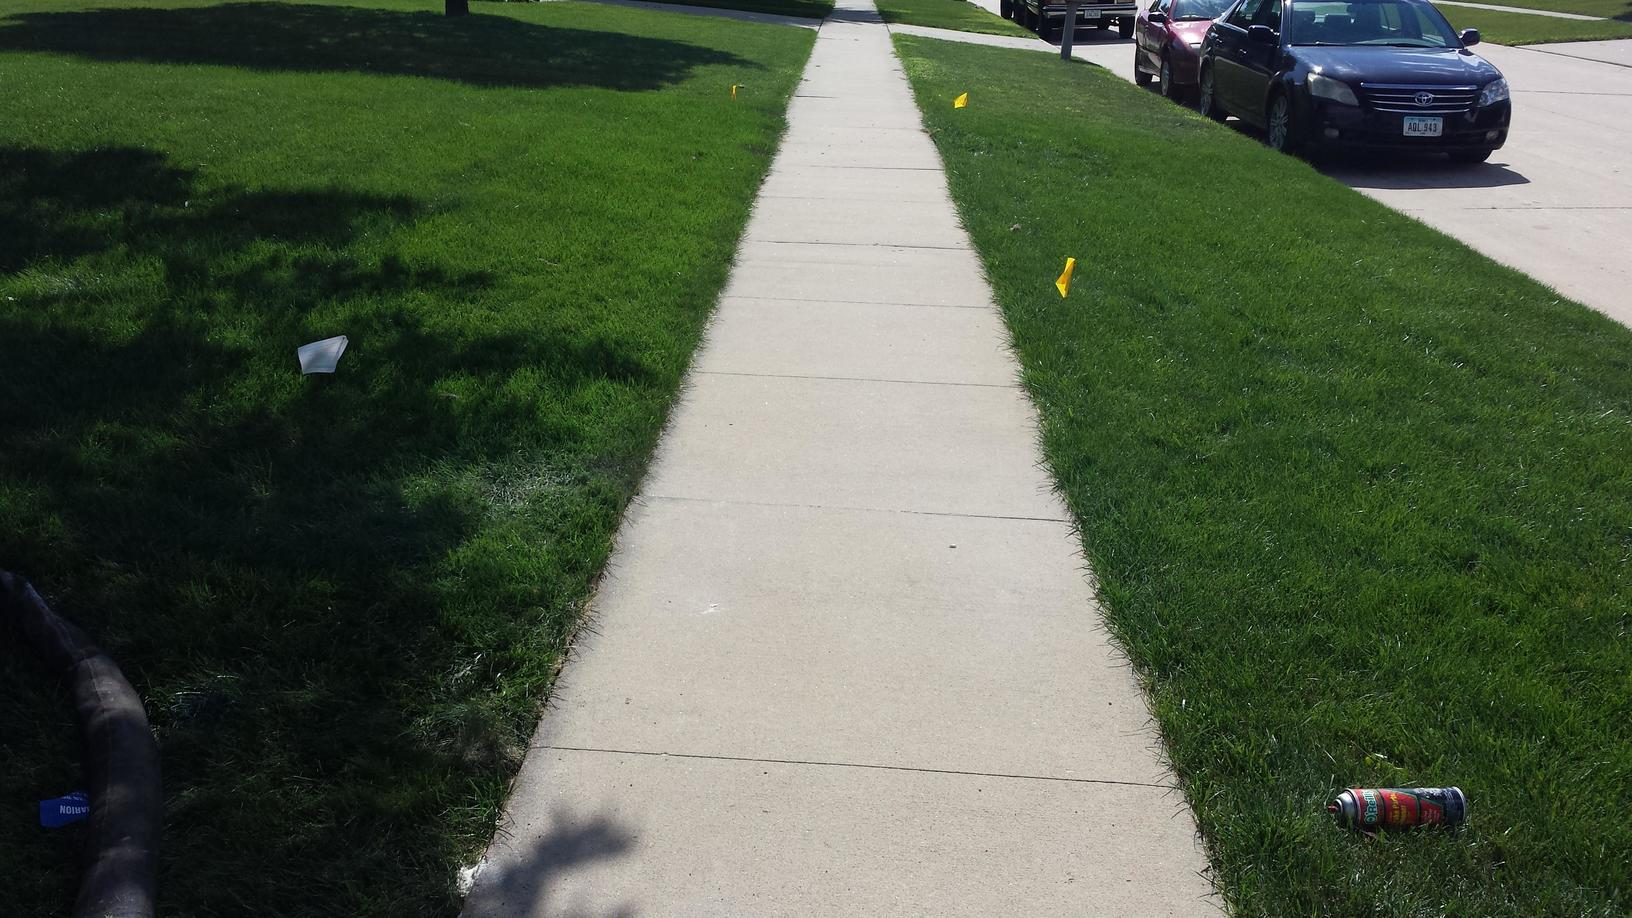 The new sidewalk after it has been lifted and leveled.